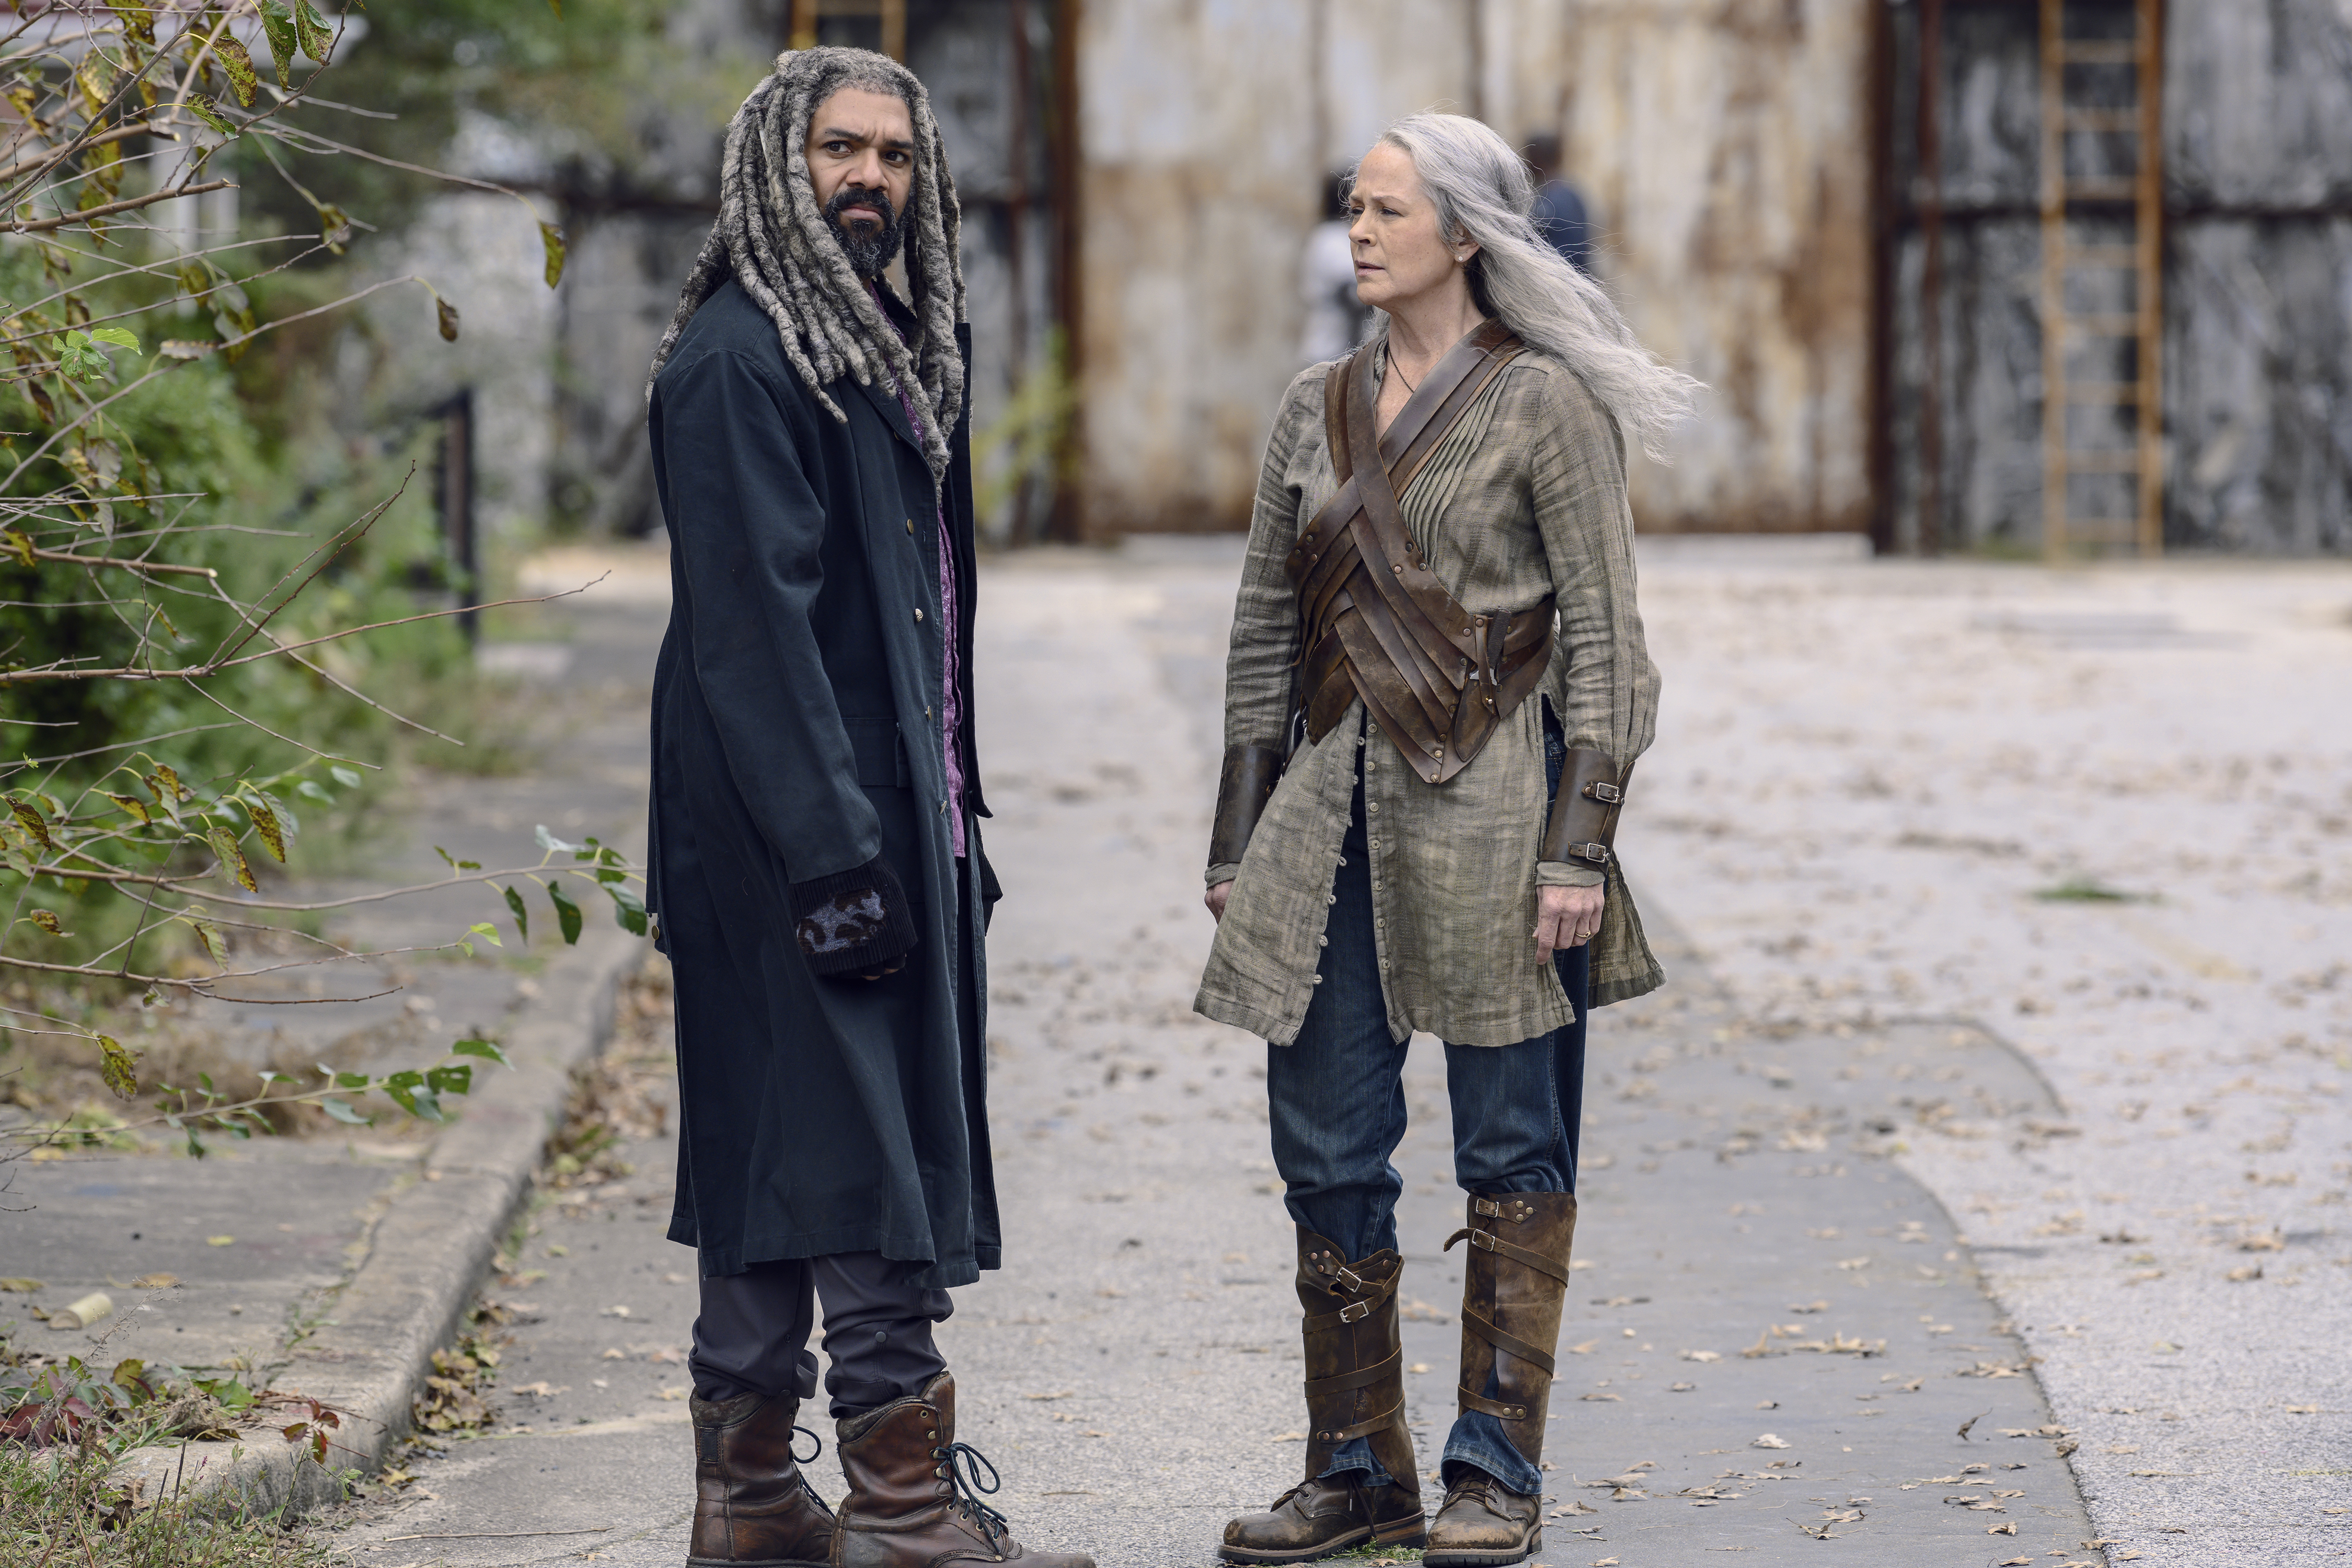 The Walking Dead: Will Carol and King Ezekiel reconcile?